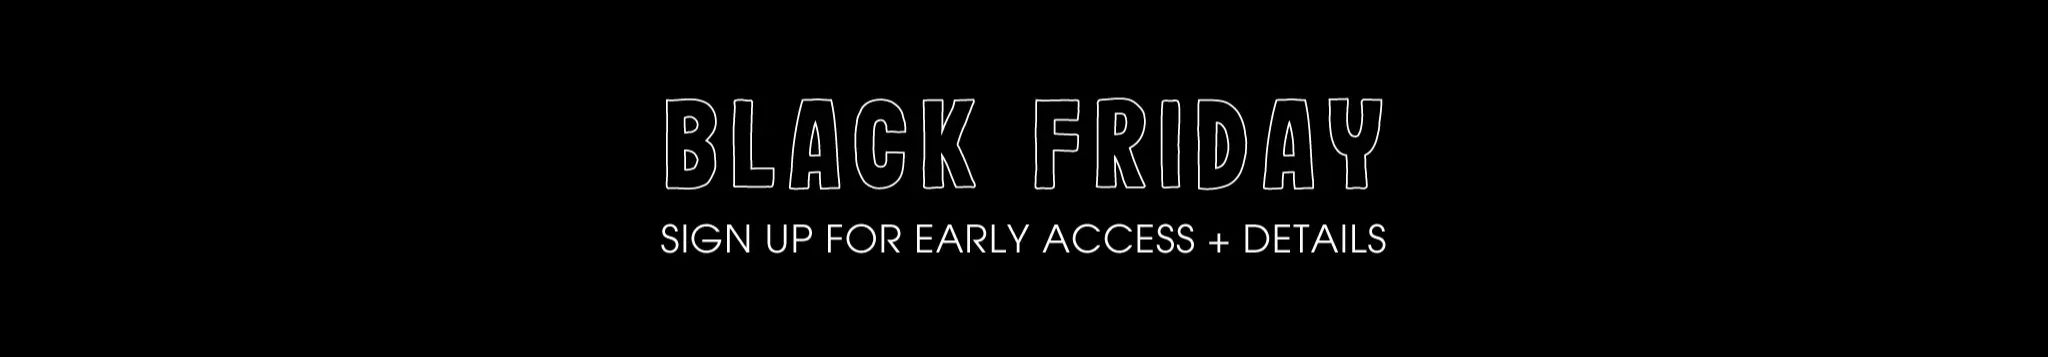 Black Friday - Sign up for early access + details